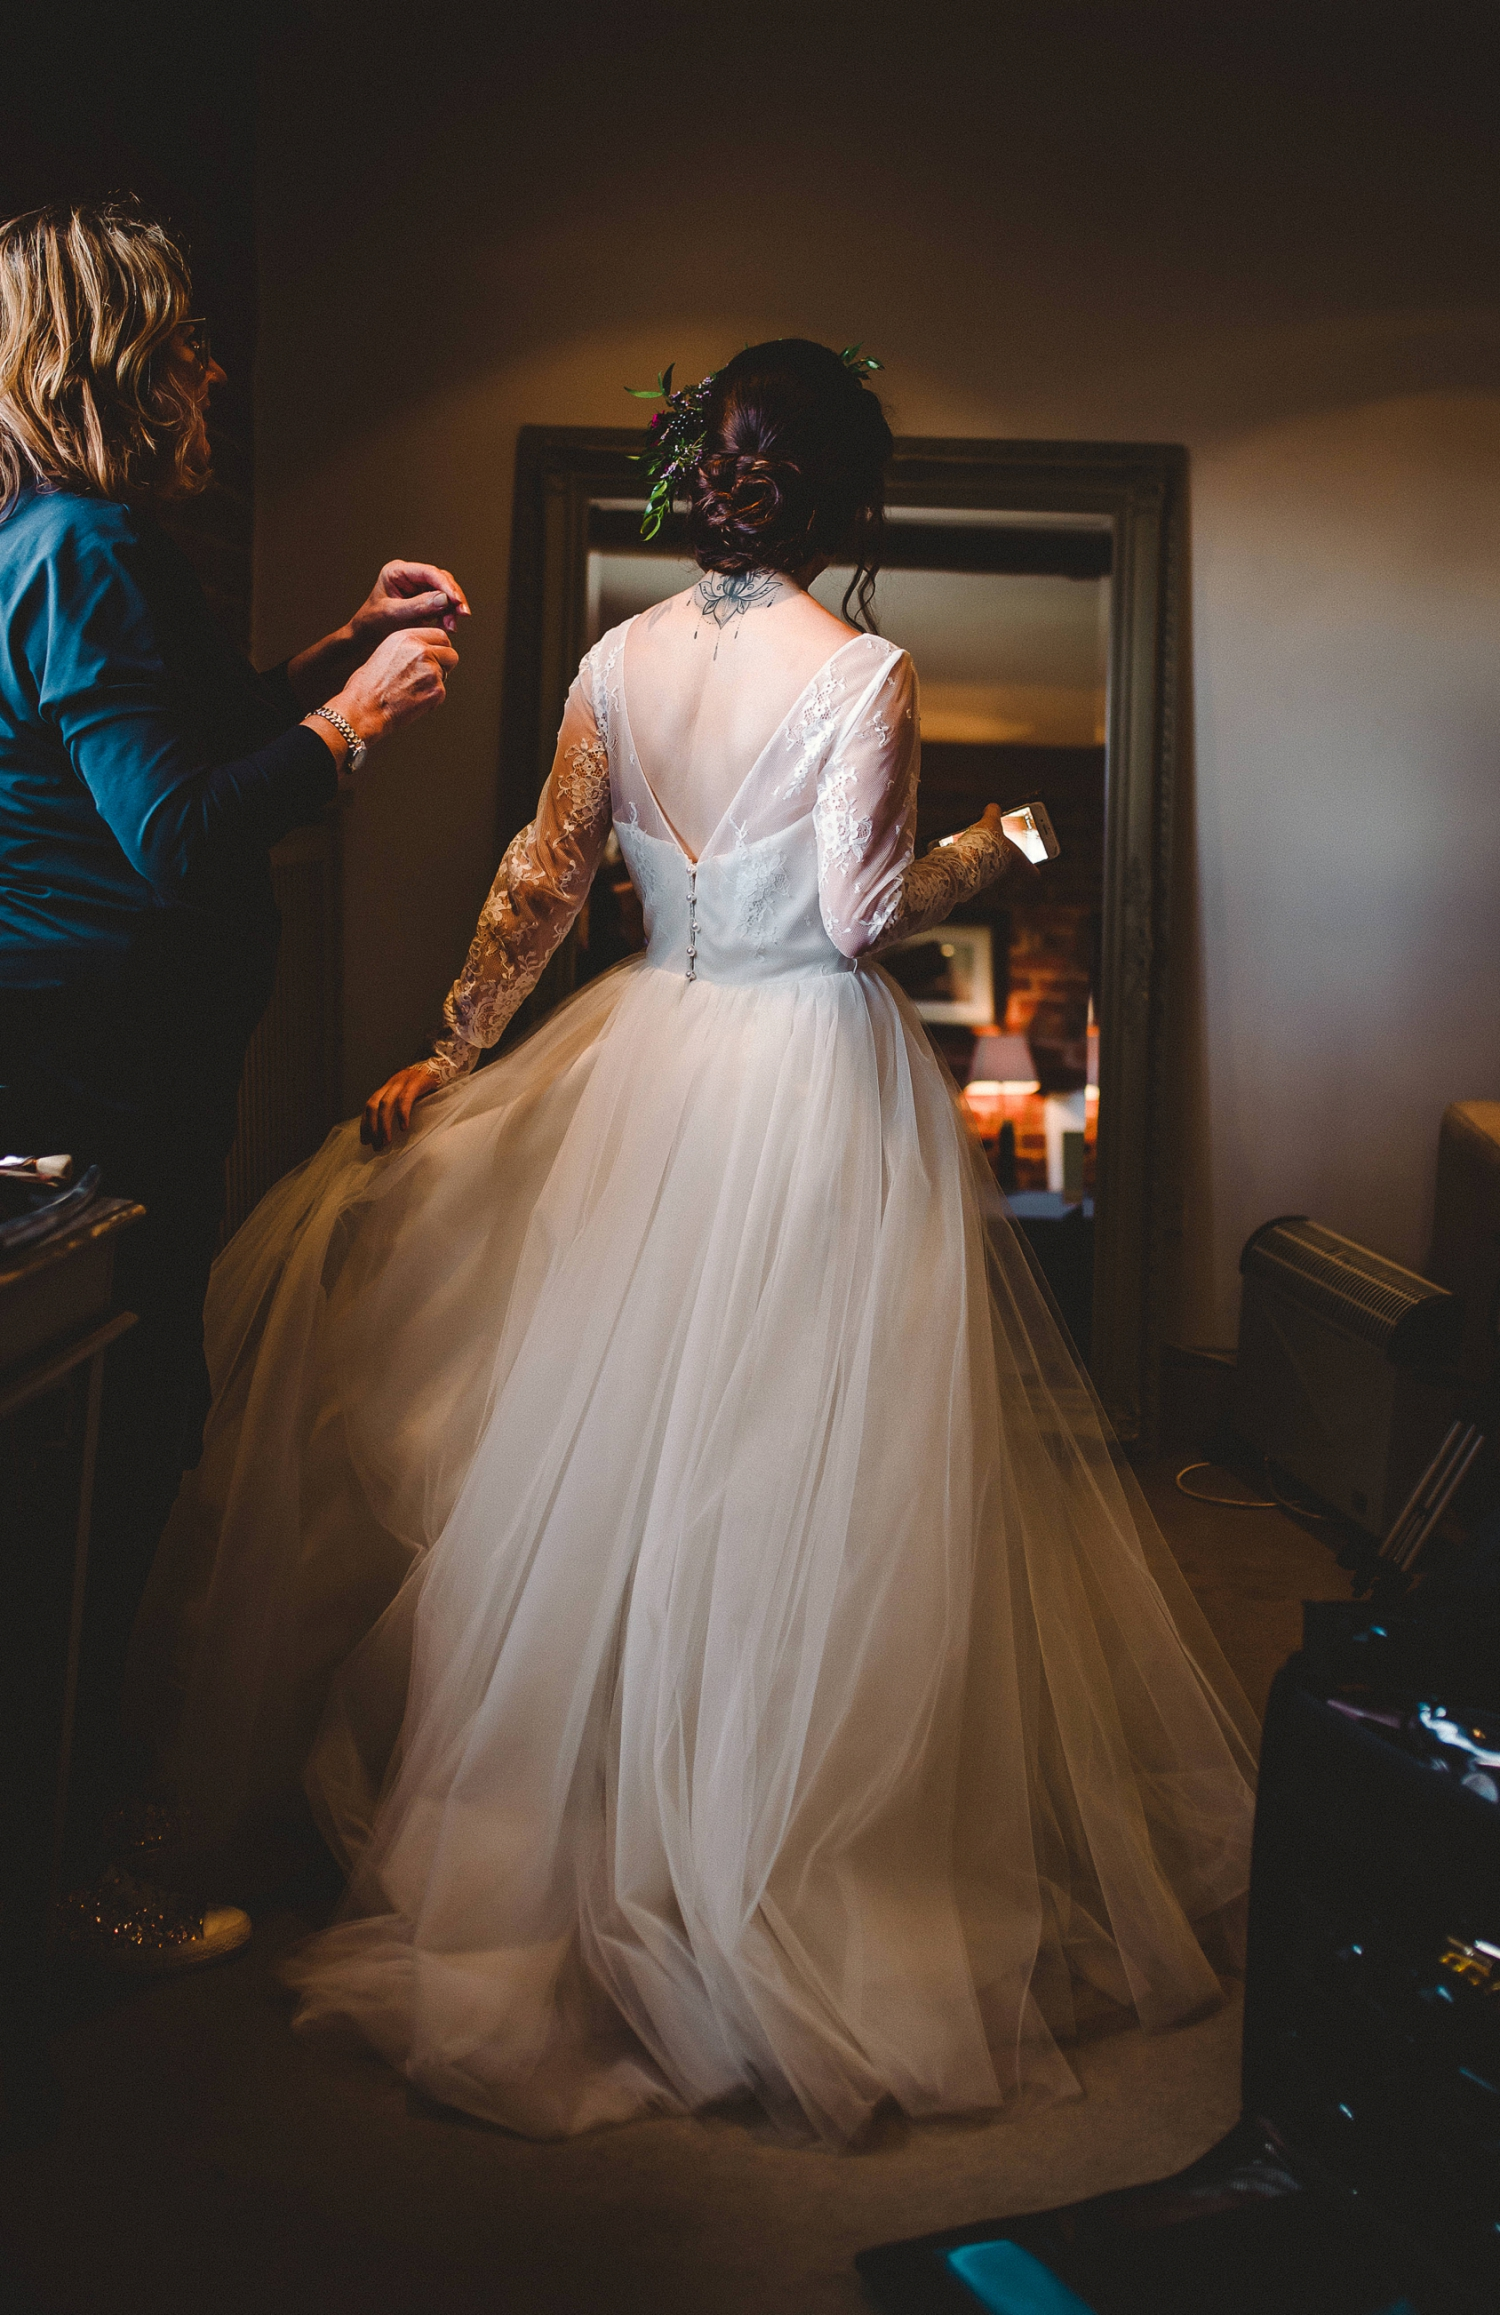 Curradine_bridal_Sept_17_amytiphoto_0038.jpg